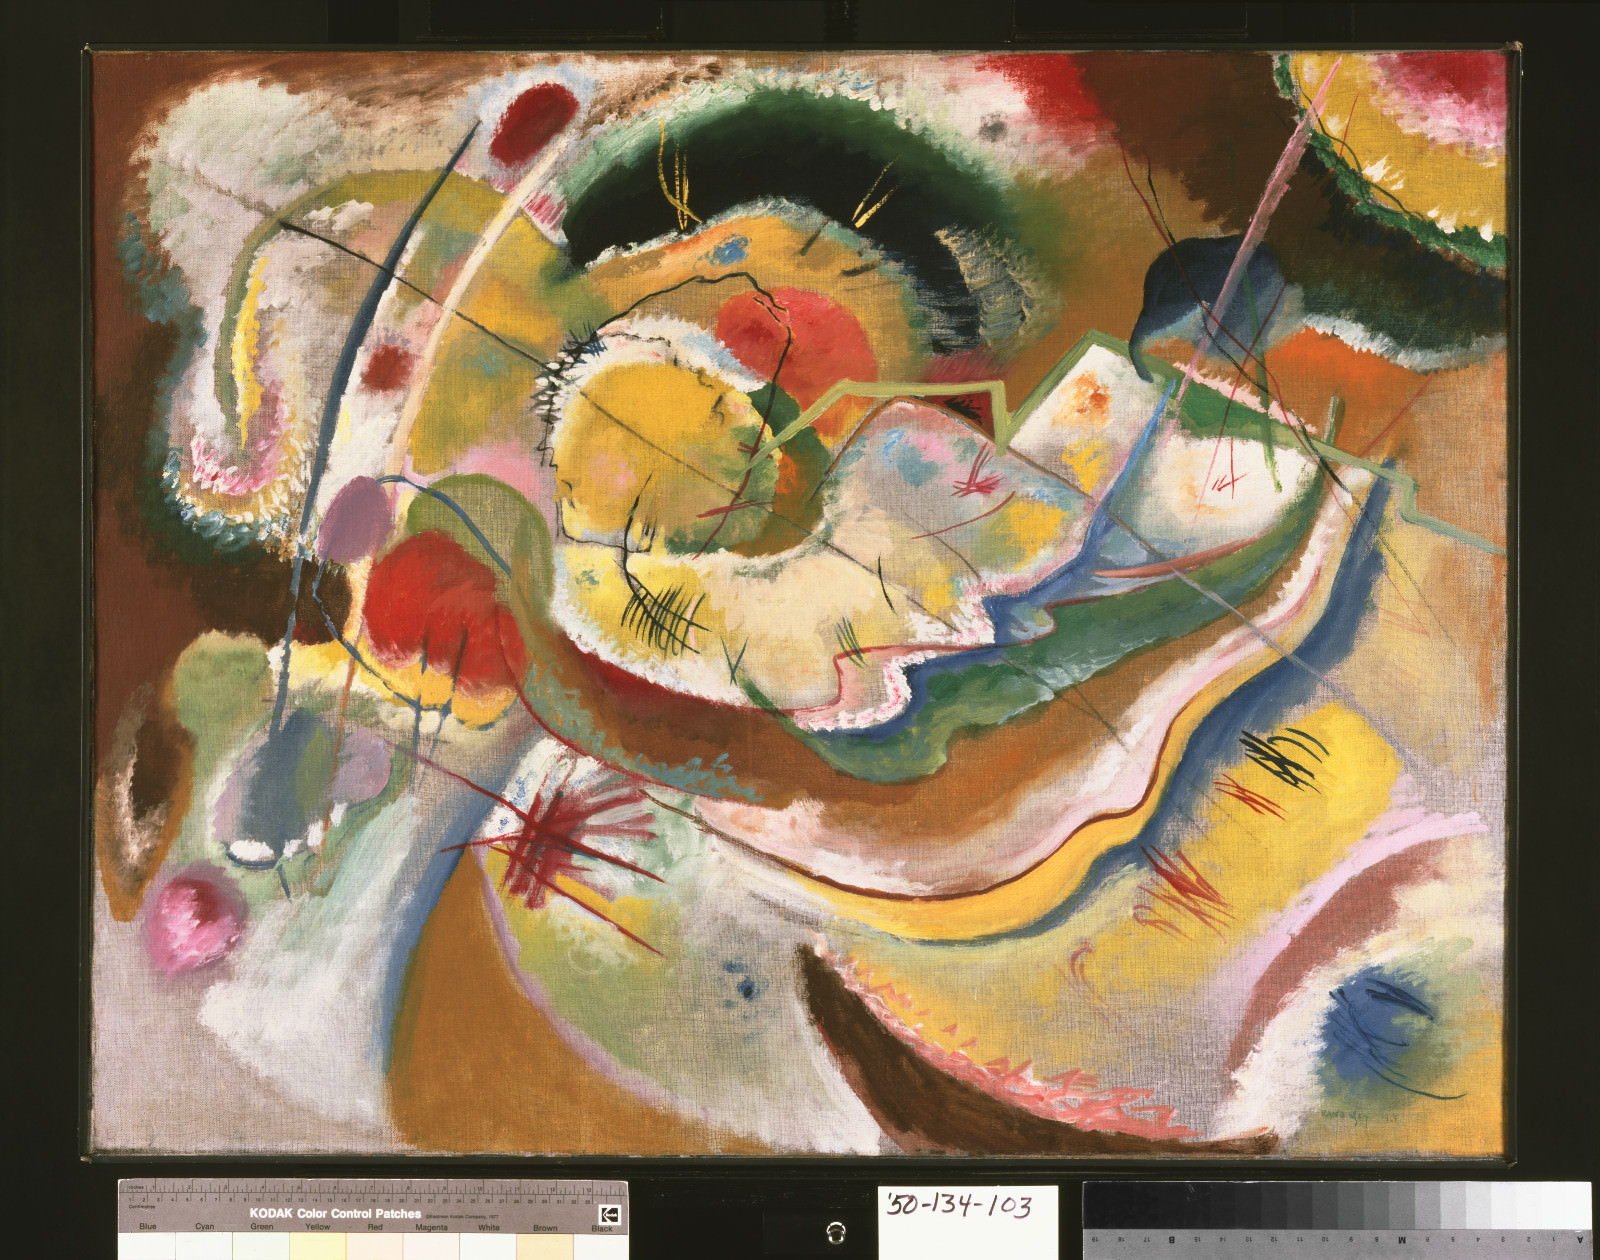 Fig. 4 – Vasily Kandinsky, Pequena Pintura com Amarelo (Improvisação), 1914, óleo sobre tela, 31 x 39 5/8 polegadas (78.7 x 100.6 cm) Emoldurado: 32 3/4 x 41 1/2 x 2 1/2 polegadas (83.2 x 105.4 x 6.4 cm). Philadelphia Museum of Art, The Louise and Walter Arensberg Collection, 1950-134-103.